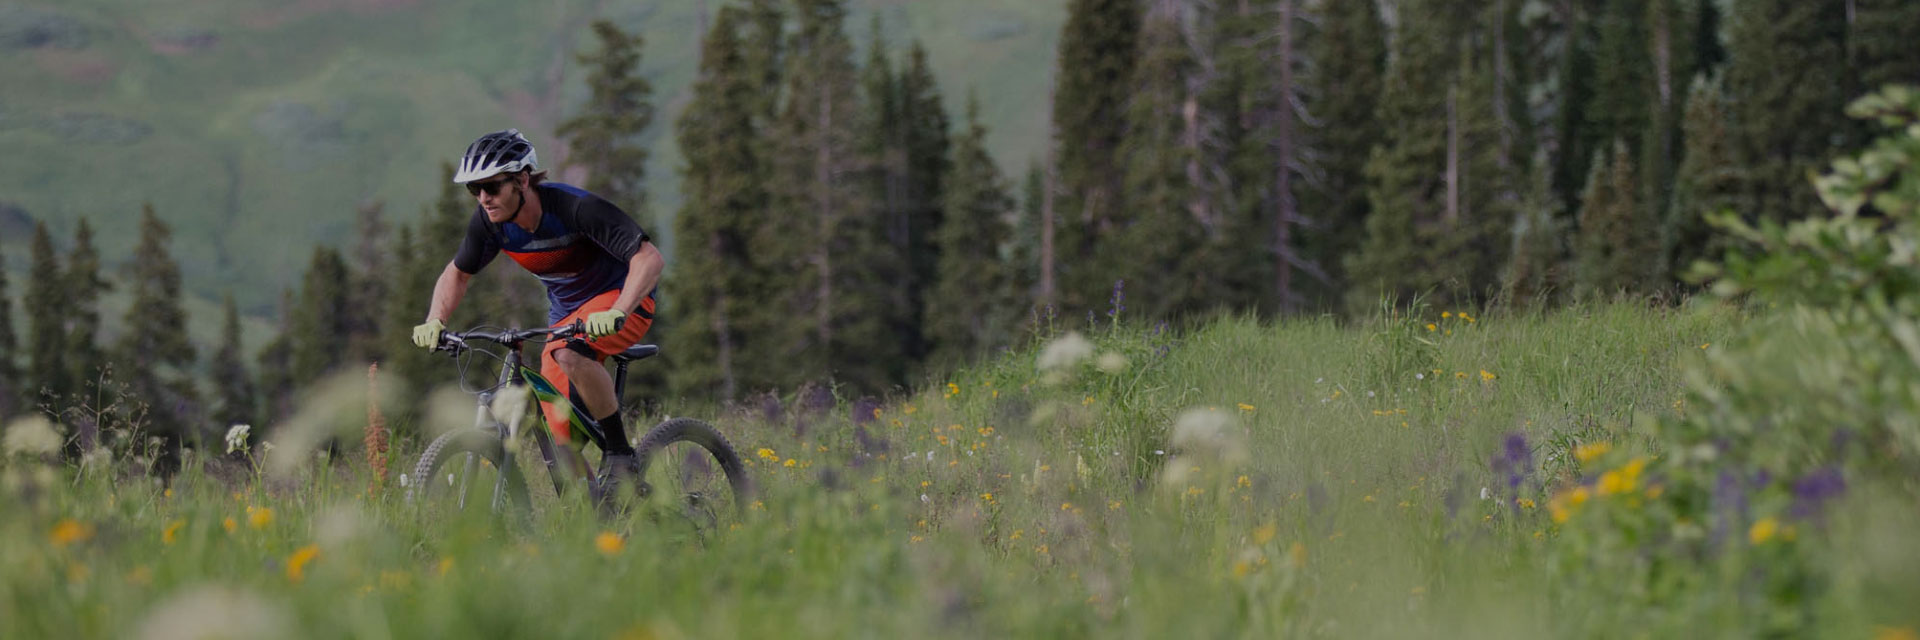 Man riding through wild flowers on mountain bike.